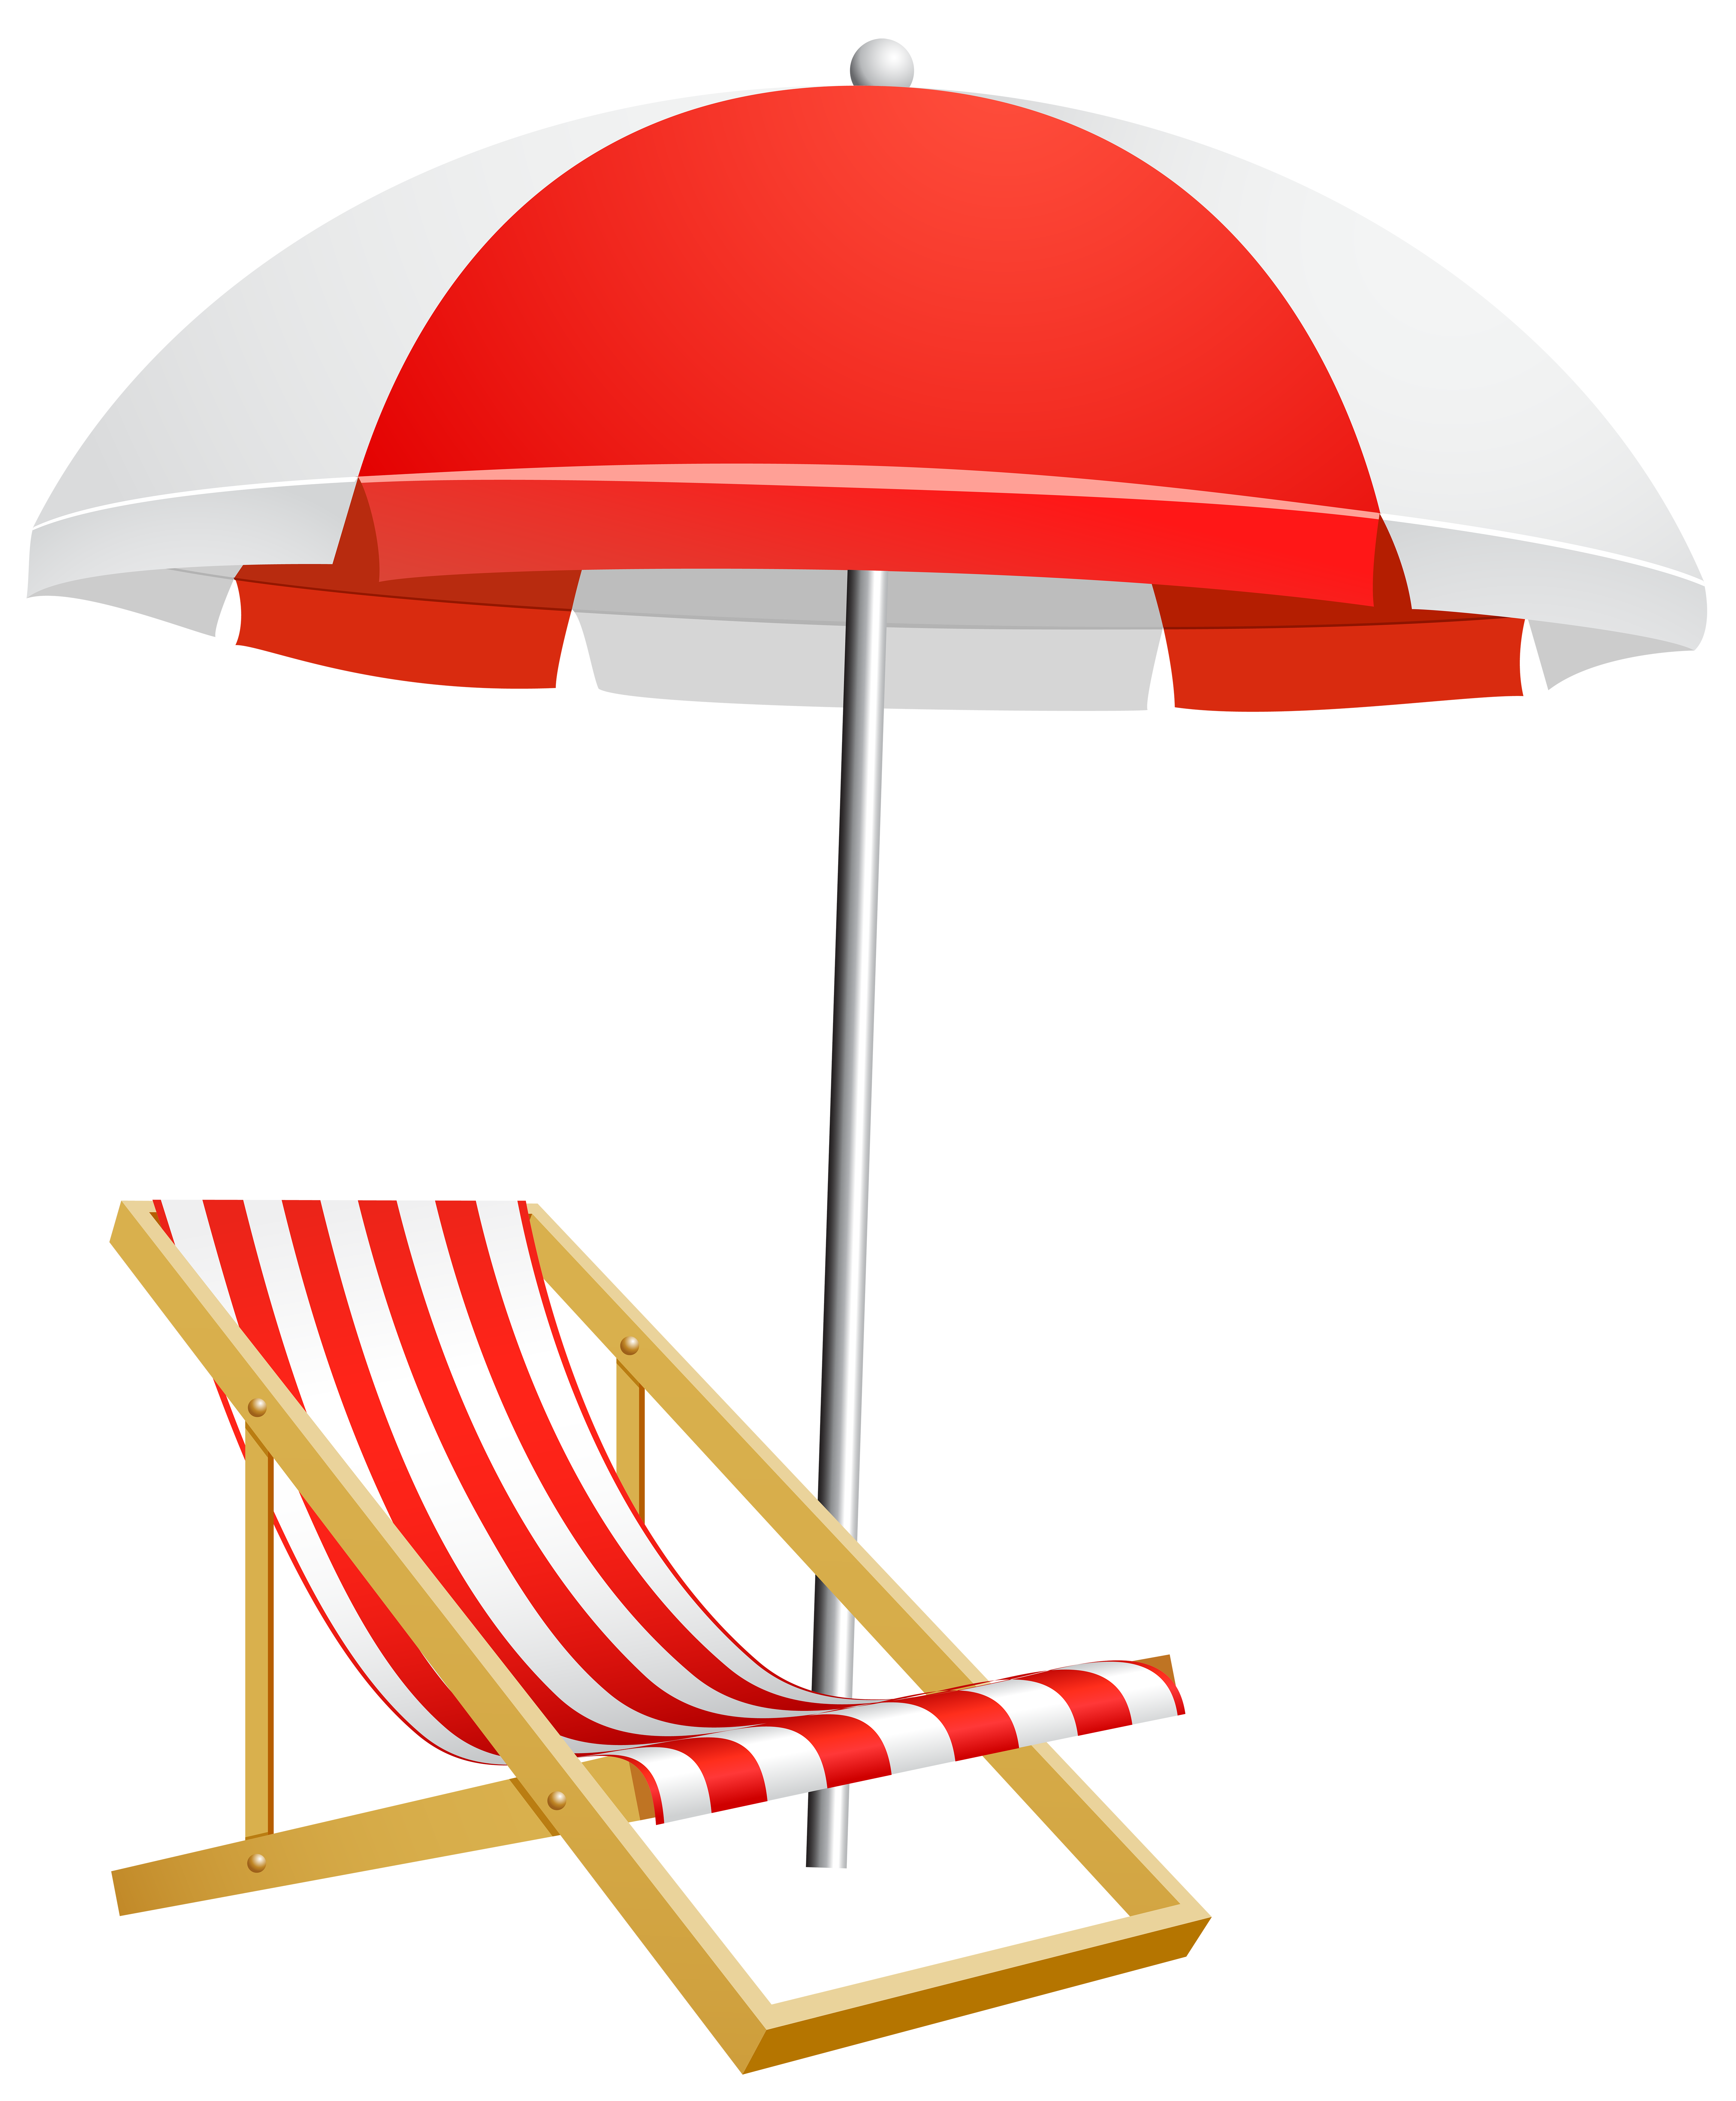 Clipart chair sea. Beach umbrella silhouette at